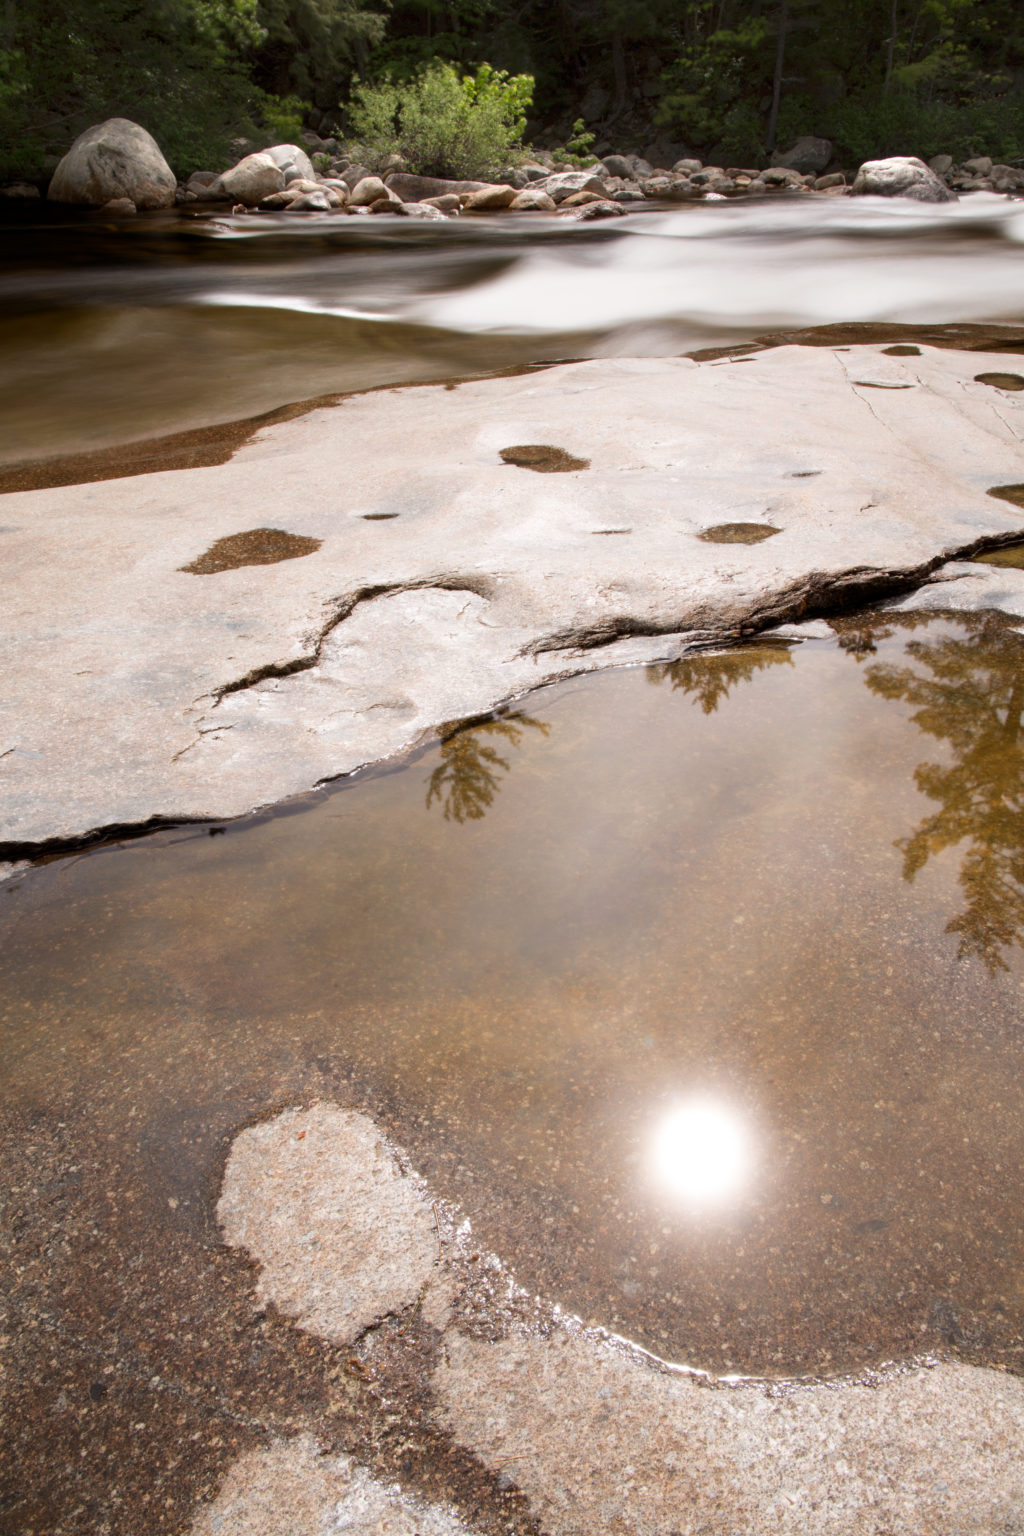 Sun Reflection in Small River Pool